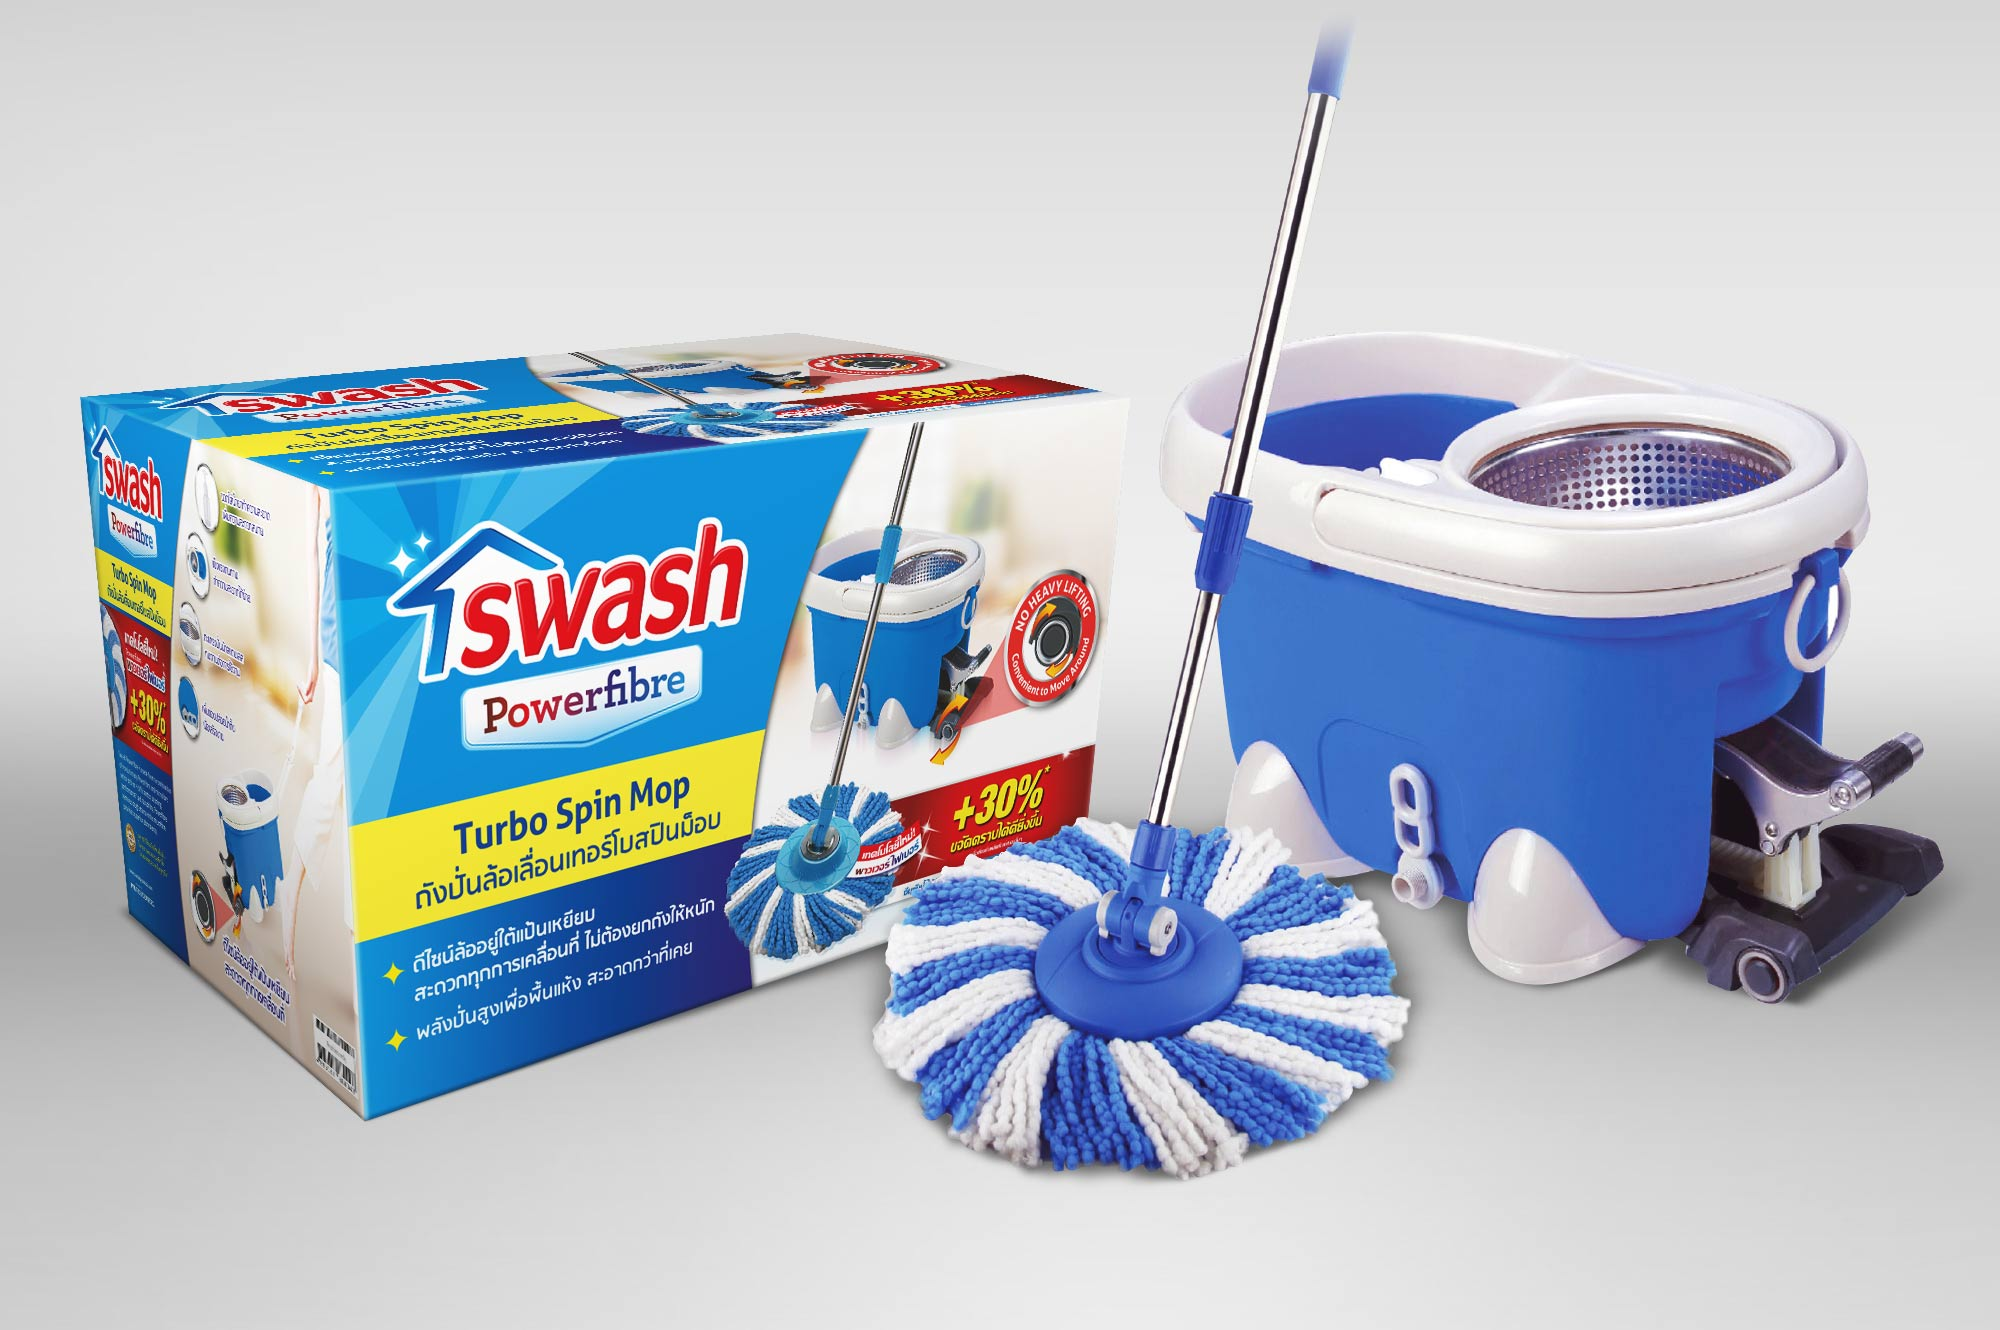 Swash Brand Box Packaging